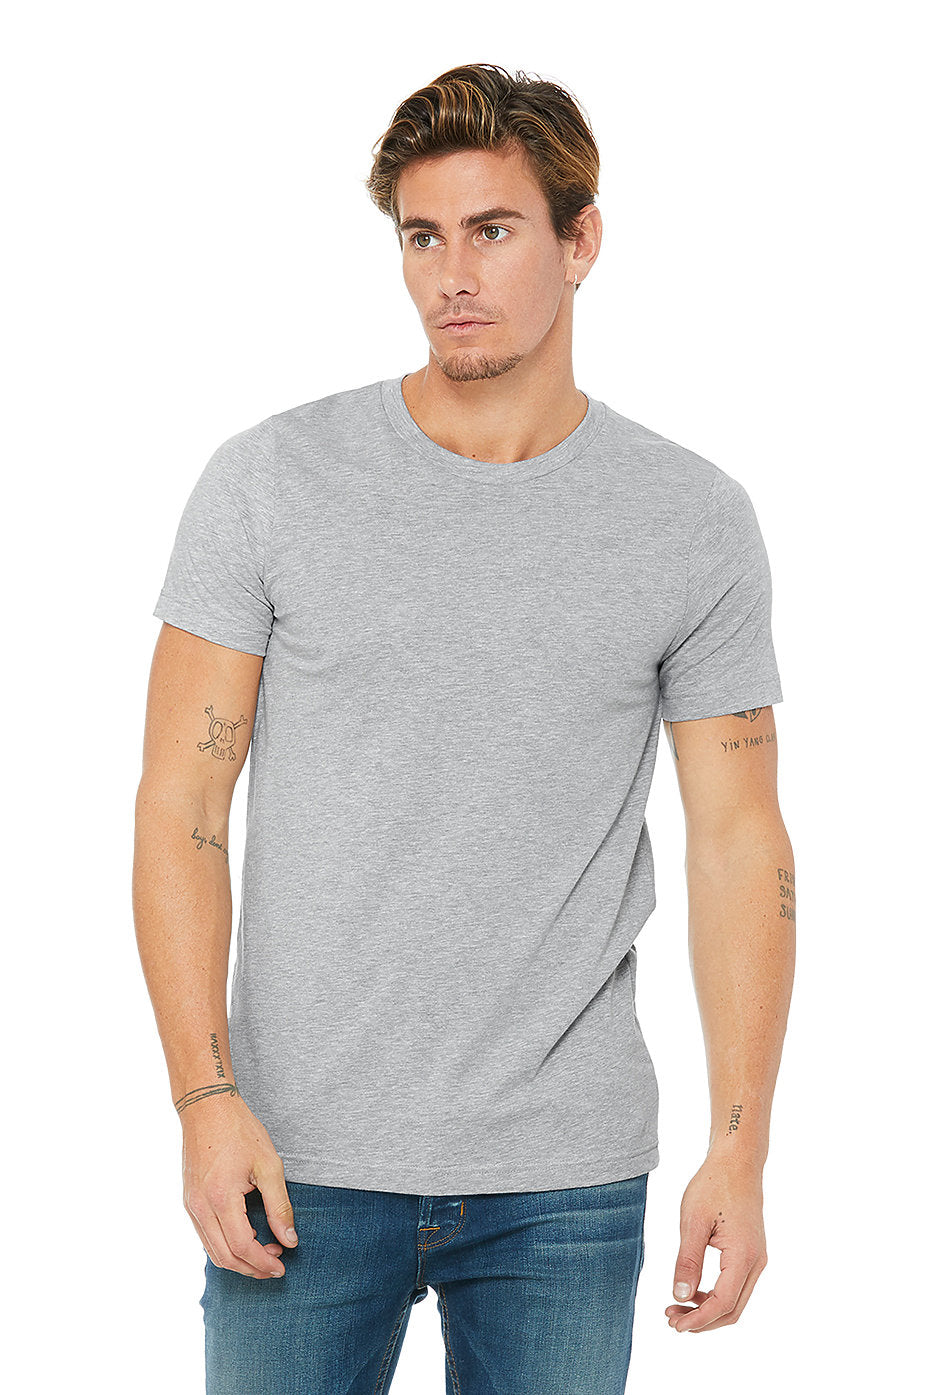 B&L Blank Heather Canvas Tee